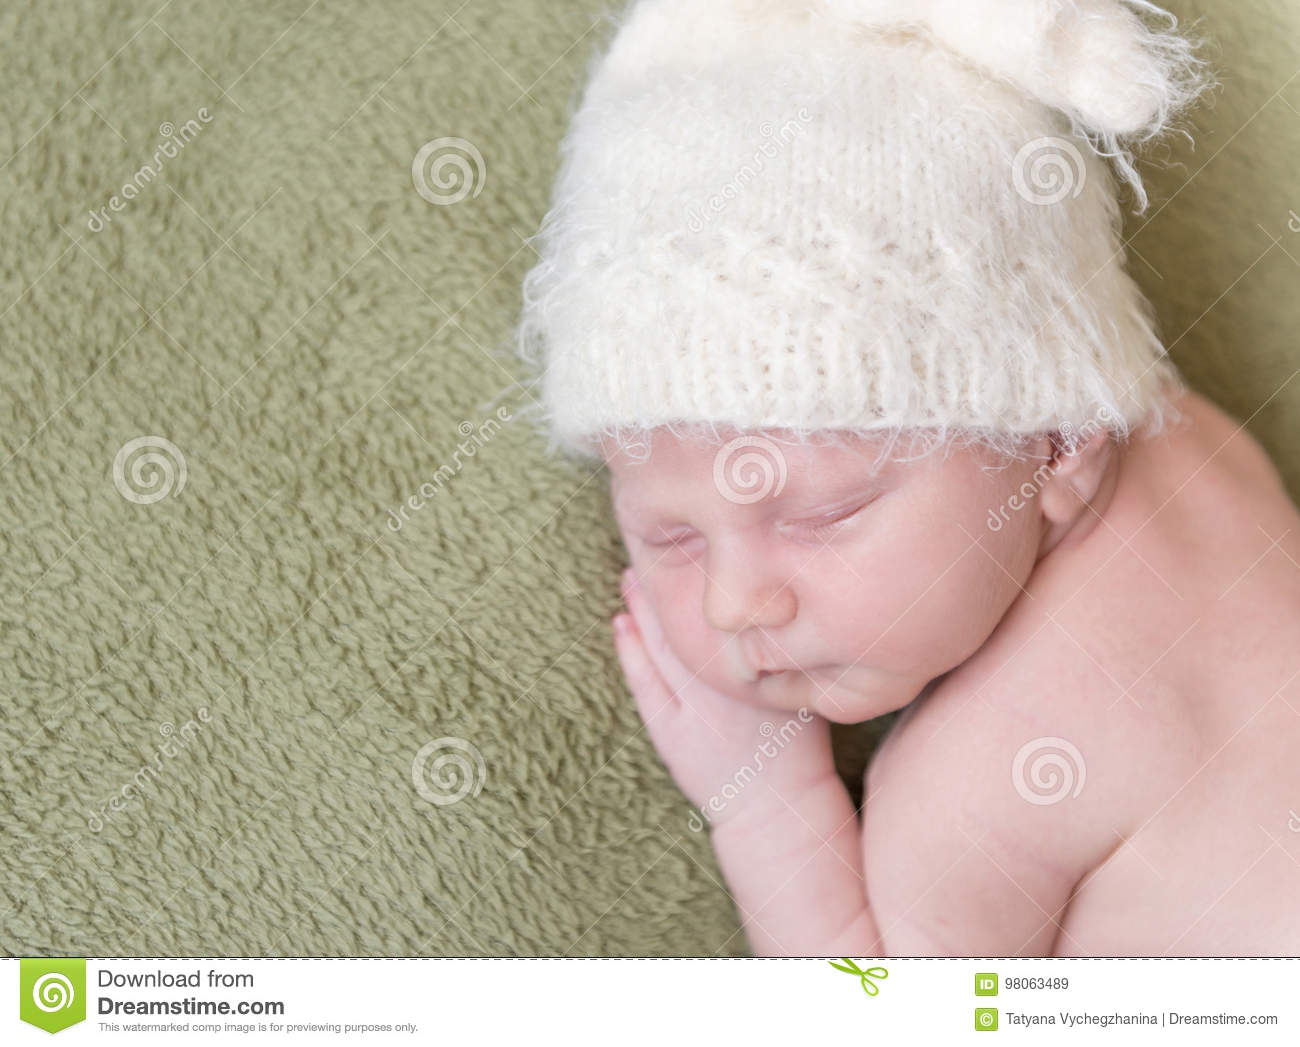 a88e0e7a2f1 Lovely Newborn Baby In Knitted Hat Stock Image - Image of alseep ...